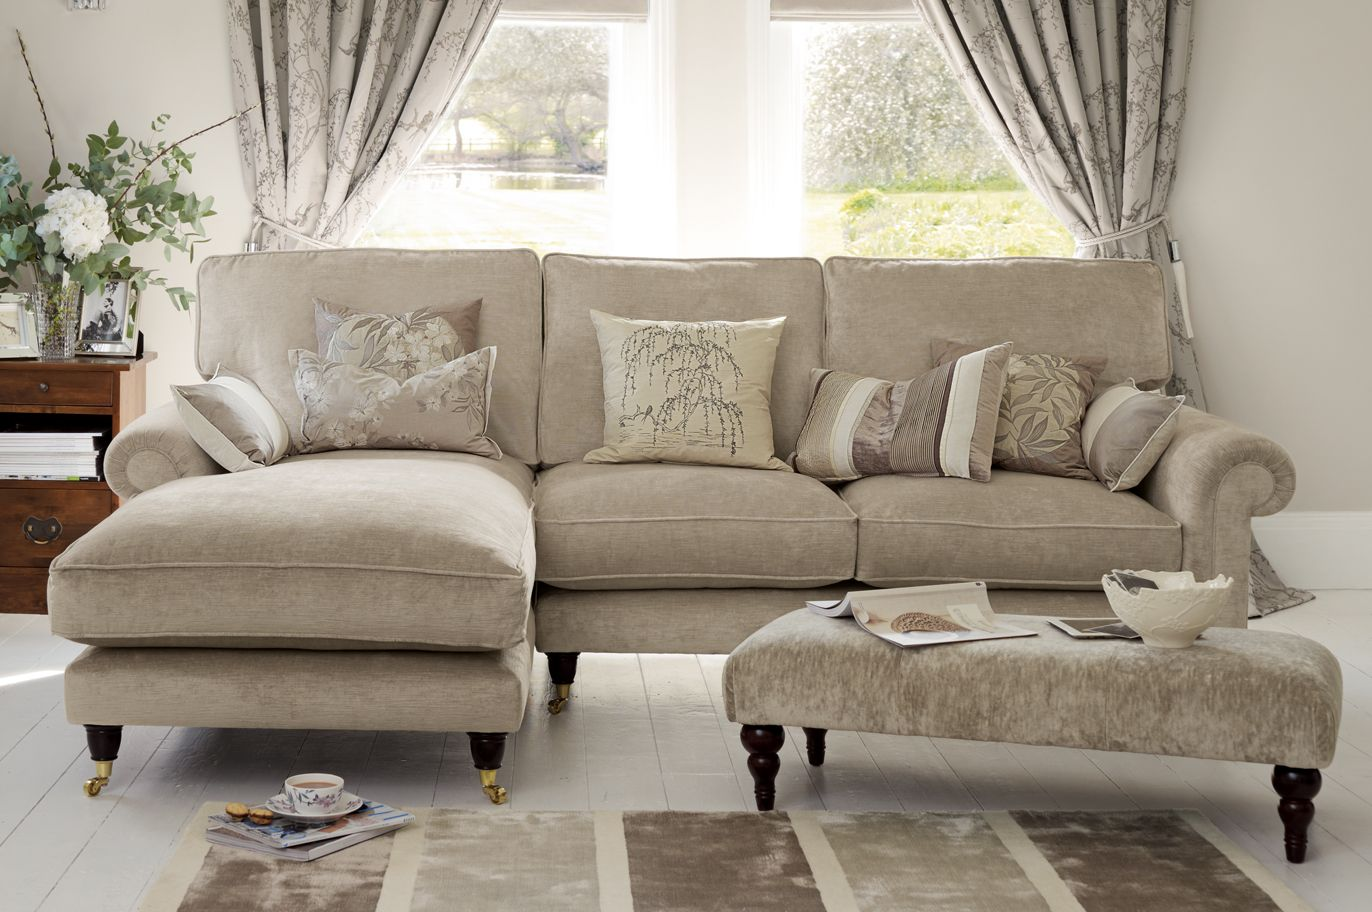 Kingston Sectional Sofa With Chaise In Sable Beige From Laura